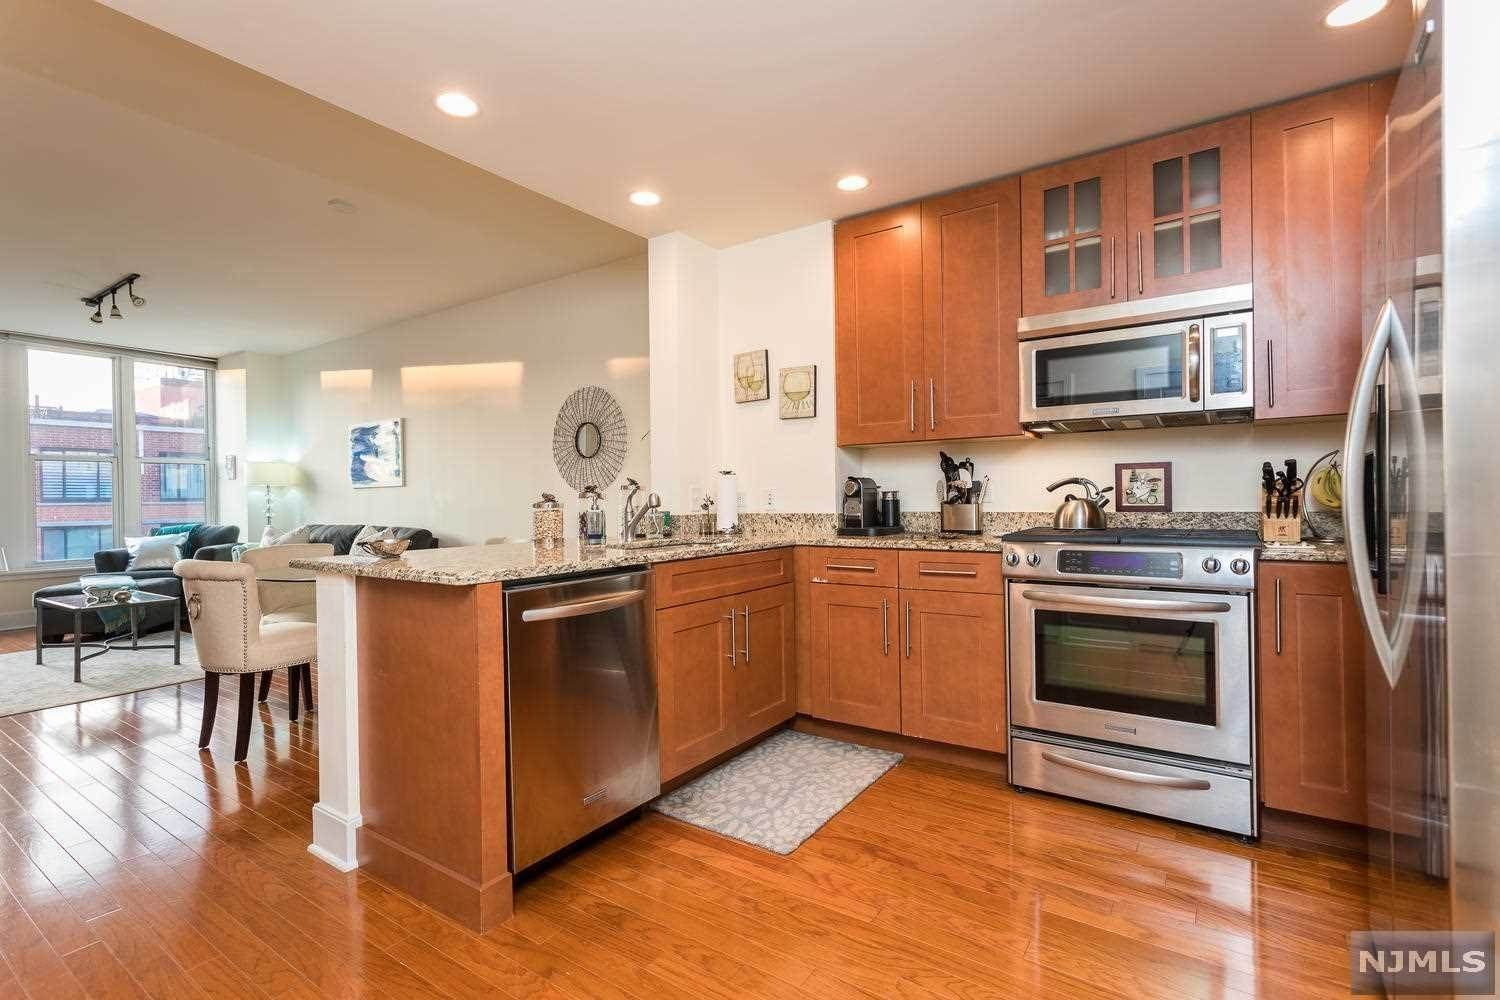 6. Condominium for Sale at 1125 Maxwell Lane #630 Hoboken, New Jersey, 07030 United States